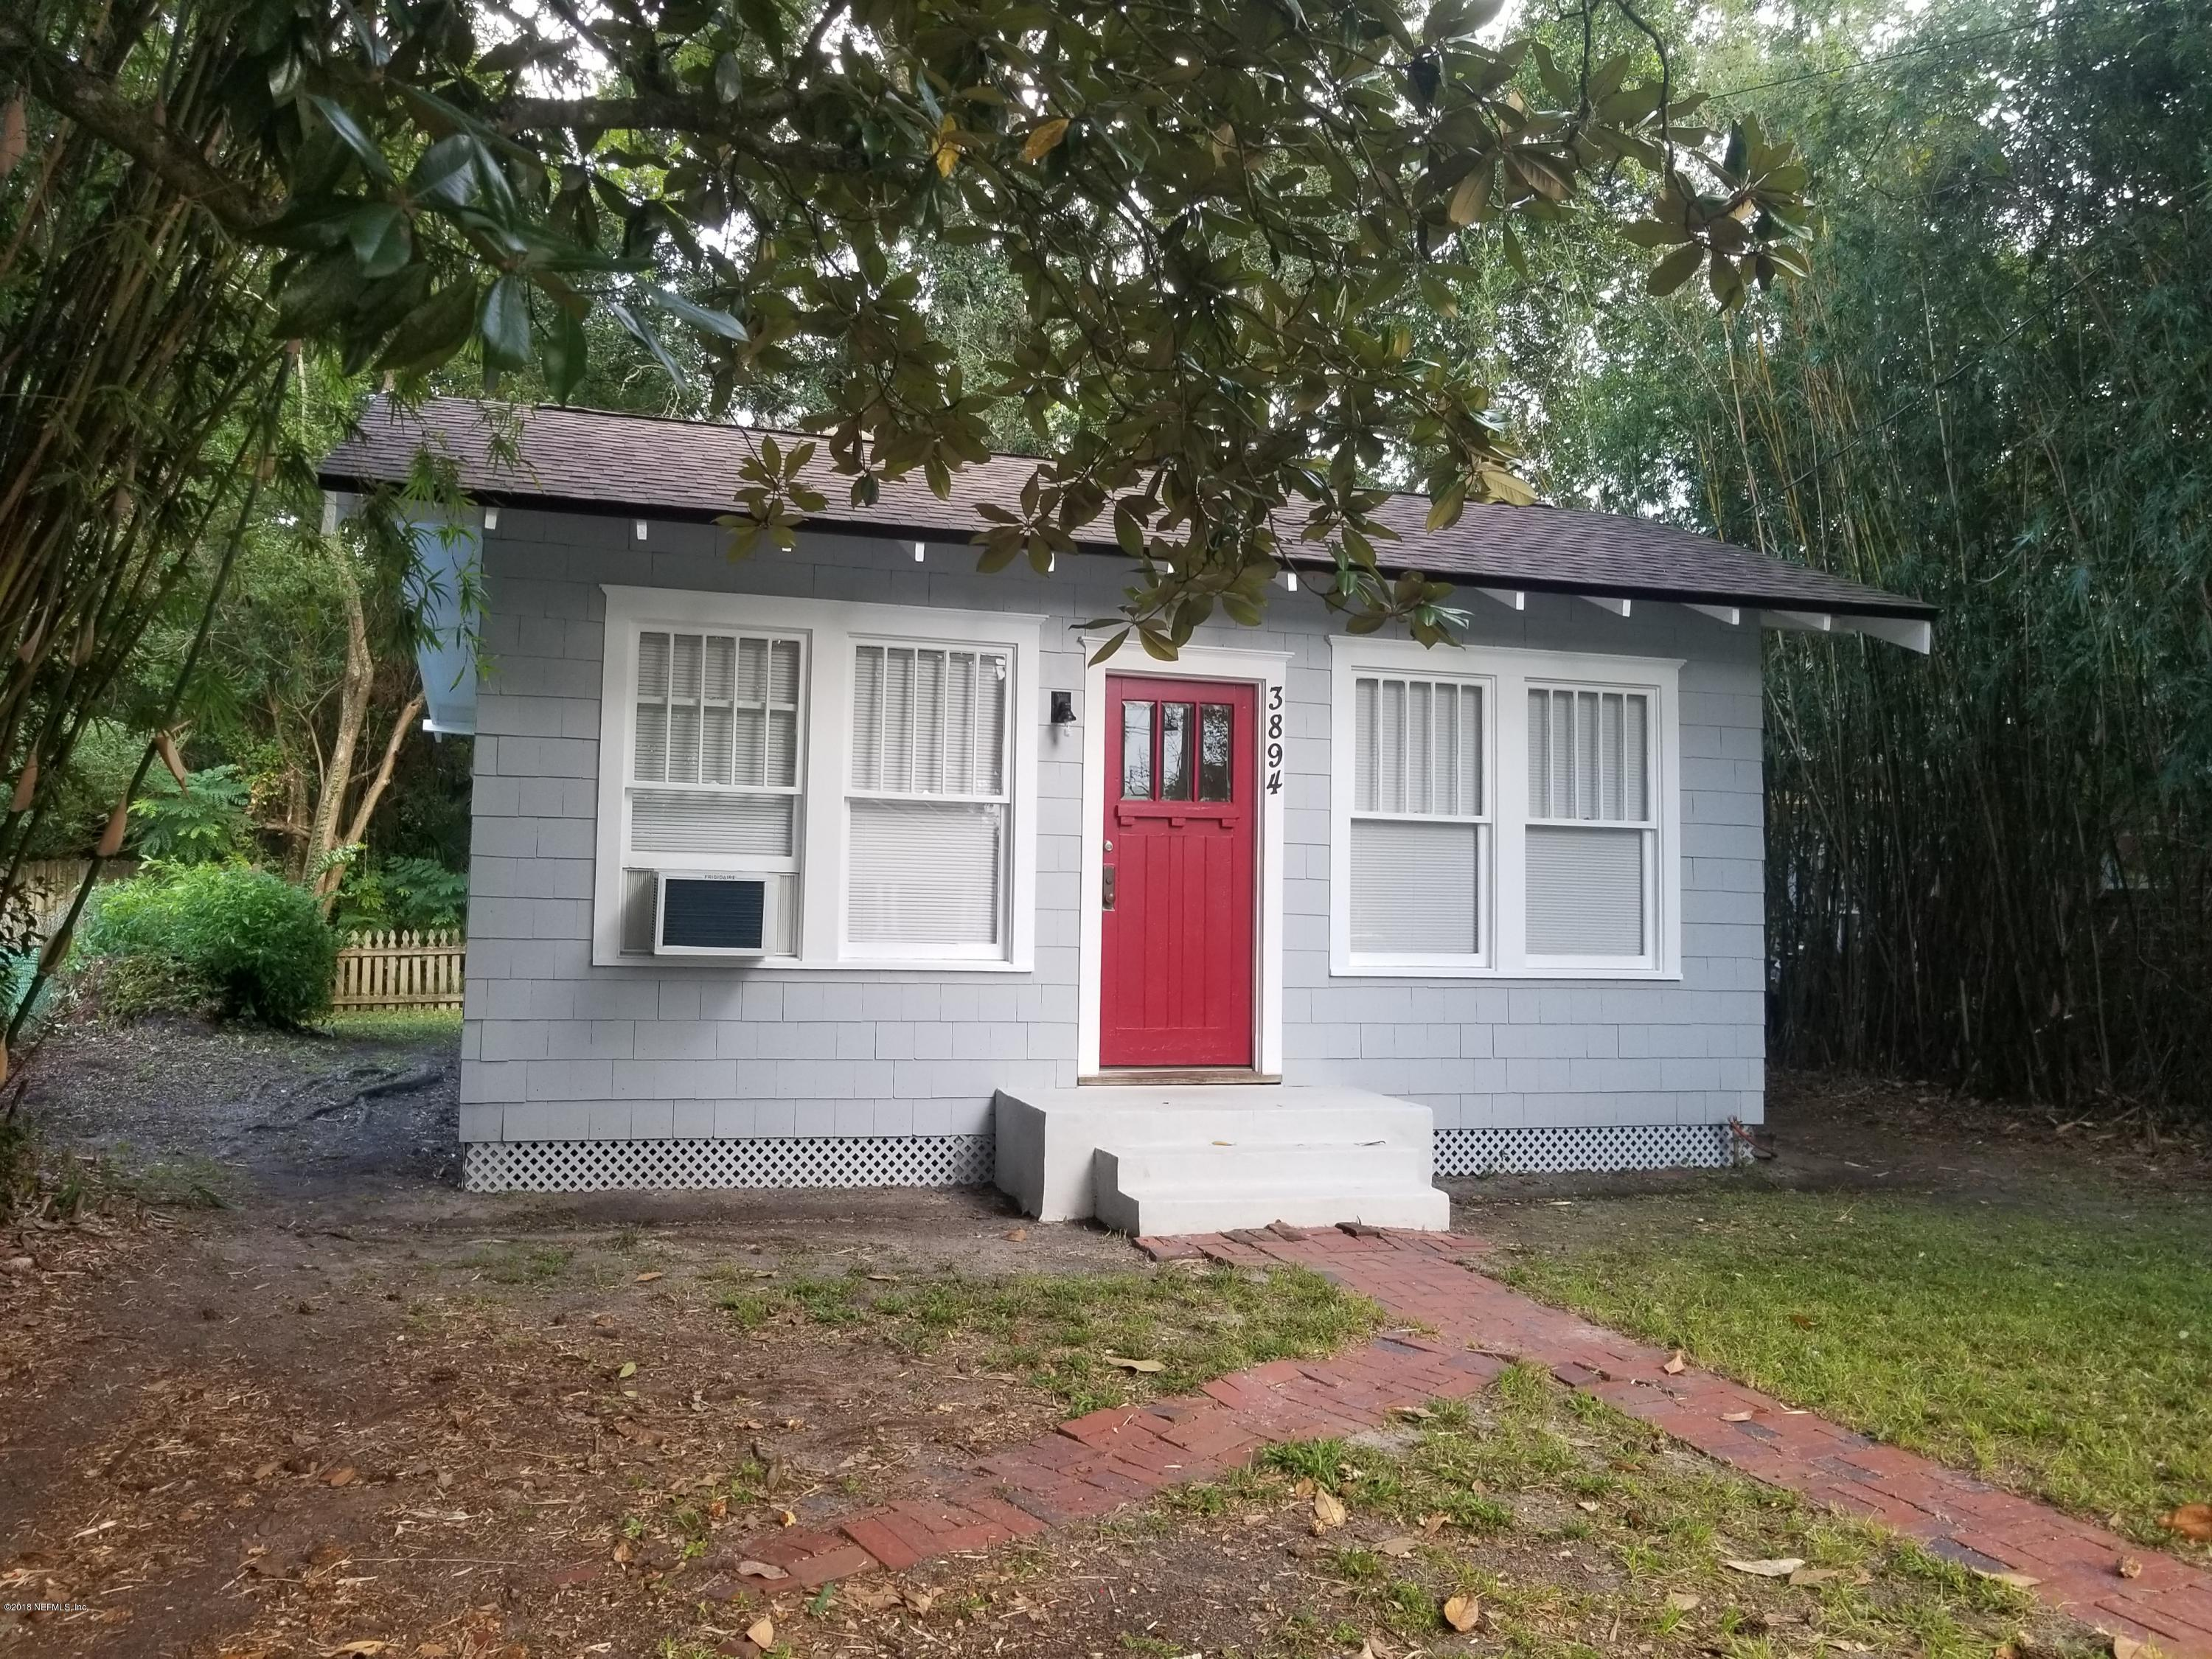 3894 WALSH, JACKSONVILLE, FLORIDA 32205, 1 Bedroom Bedrooms, ,1 BathroomBathrooms,Residential - single family,For sale,WALSH,960498